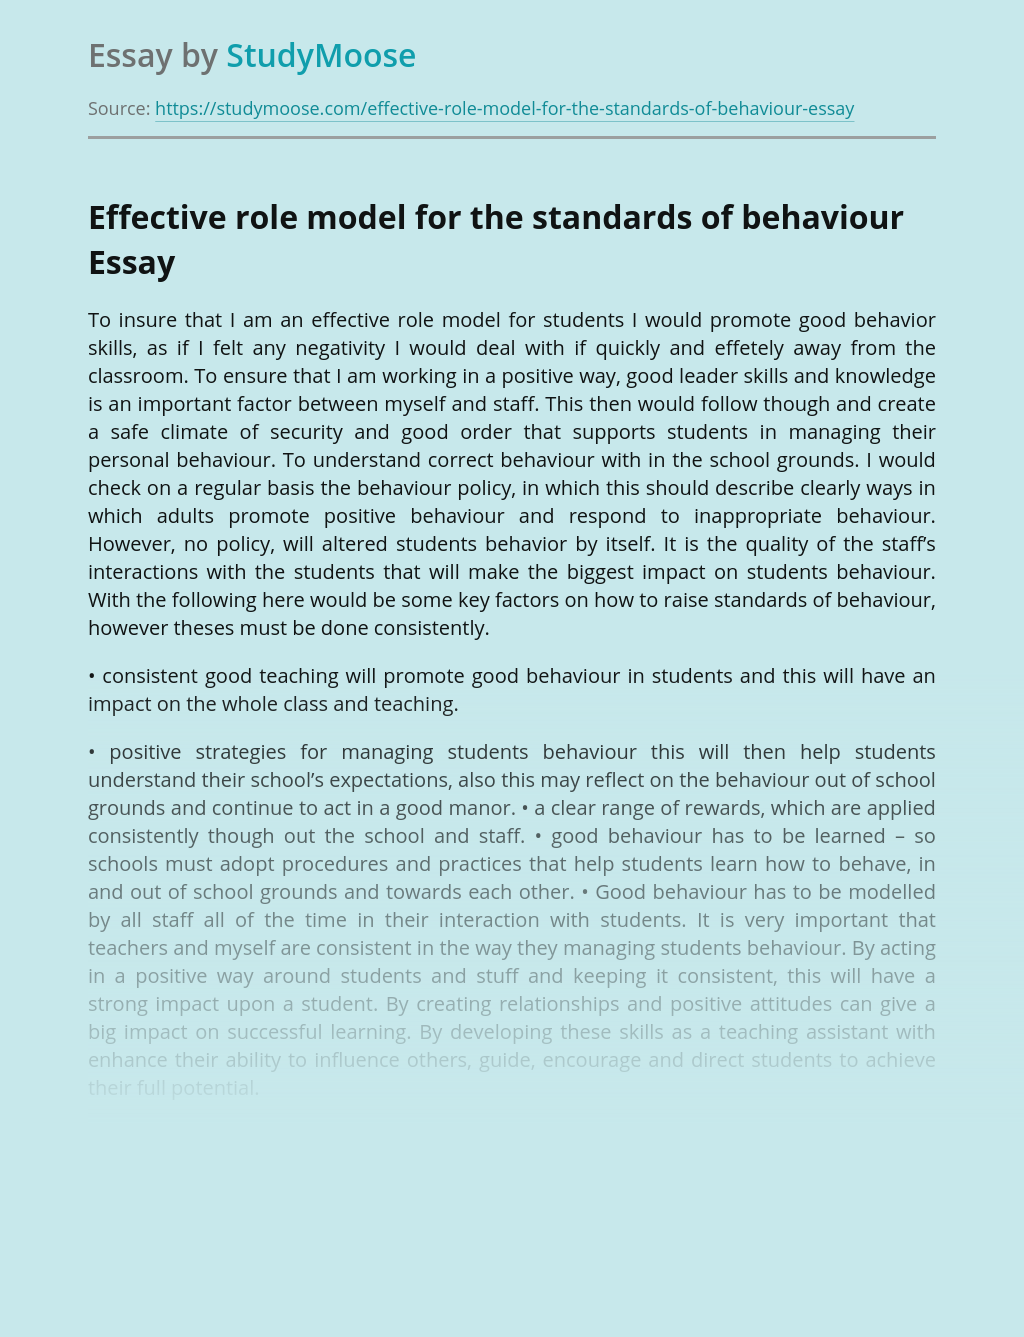 Effective role model for the standards of behaviour